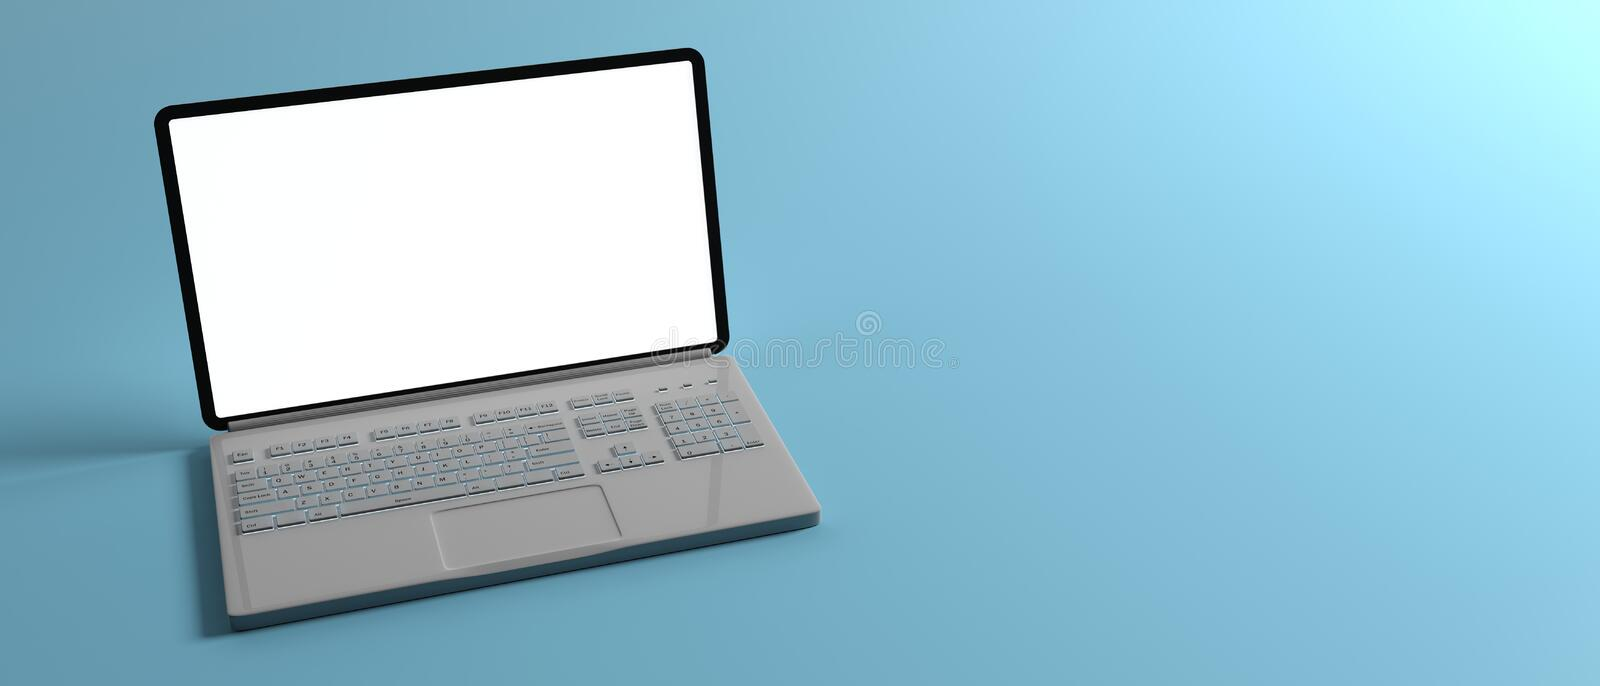 Computer laptop with blank white screen isolated on blue background, banner, copy space. 3d illustration stock illustration